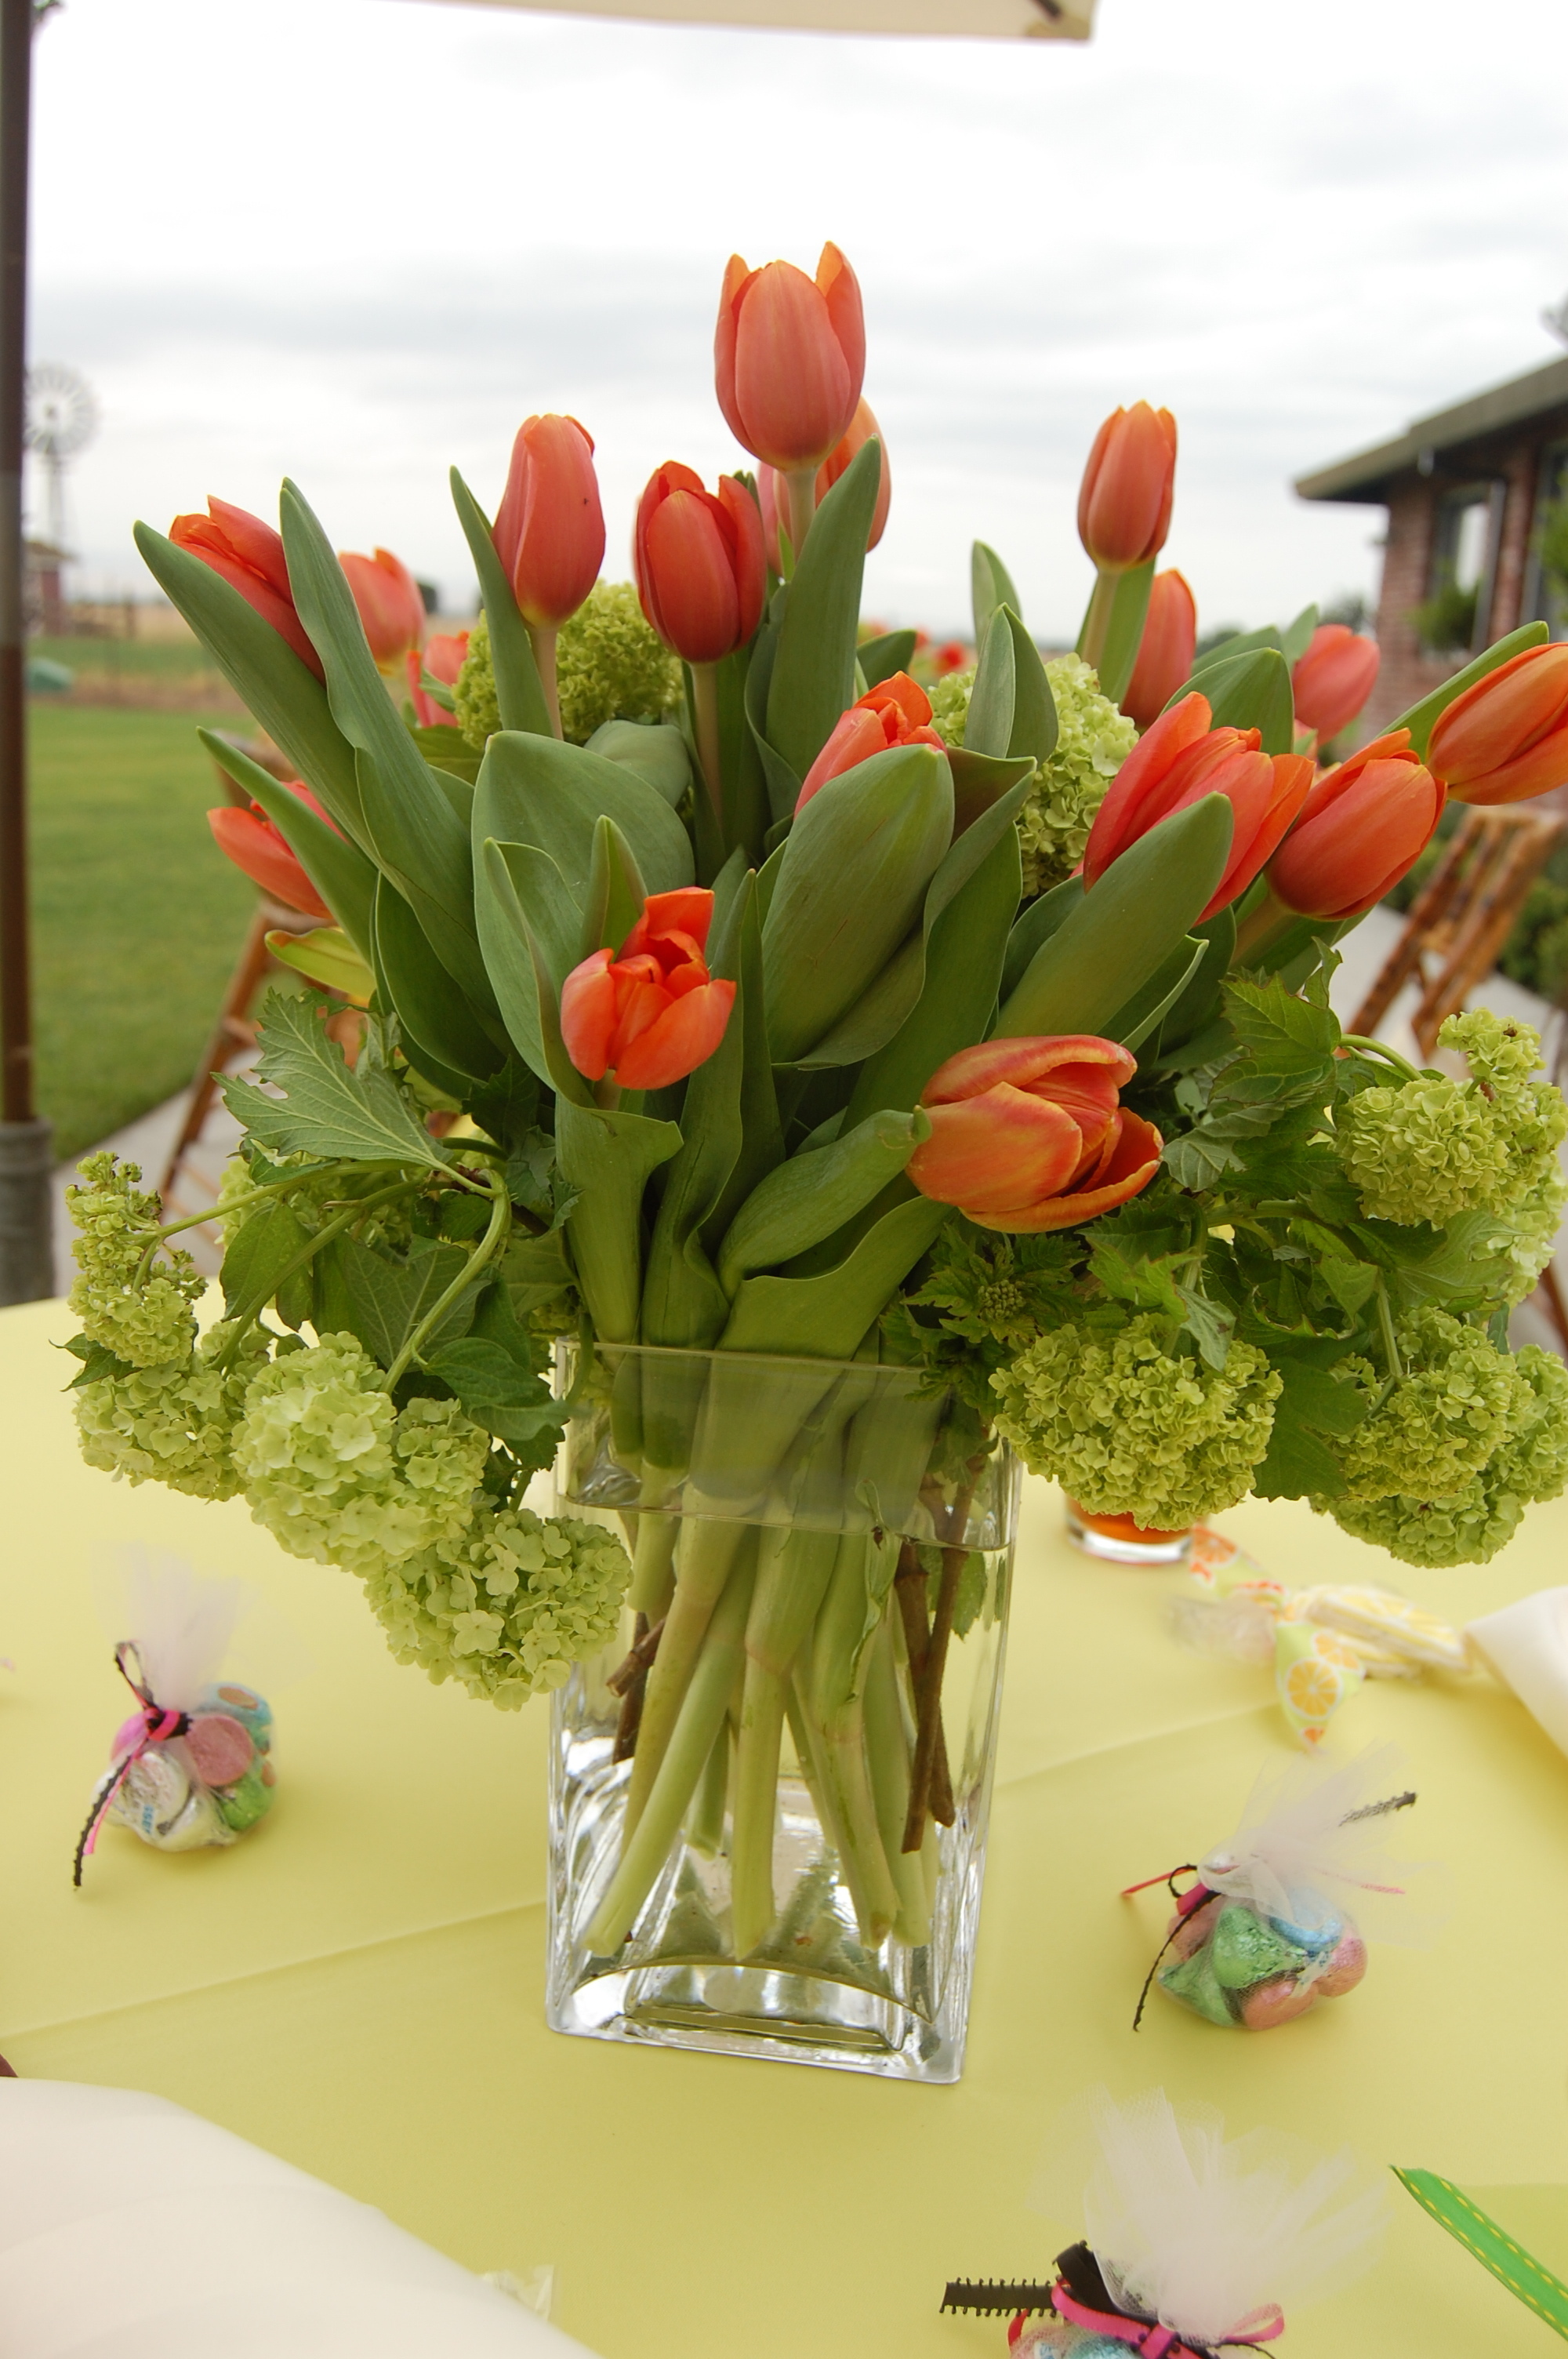 Flowers & Decor, yellow, orange, Flowers, Bridal, Table, Tulips, Shower, Cloth